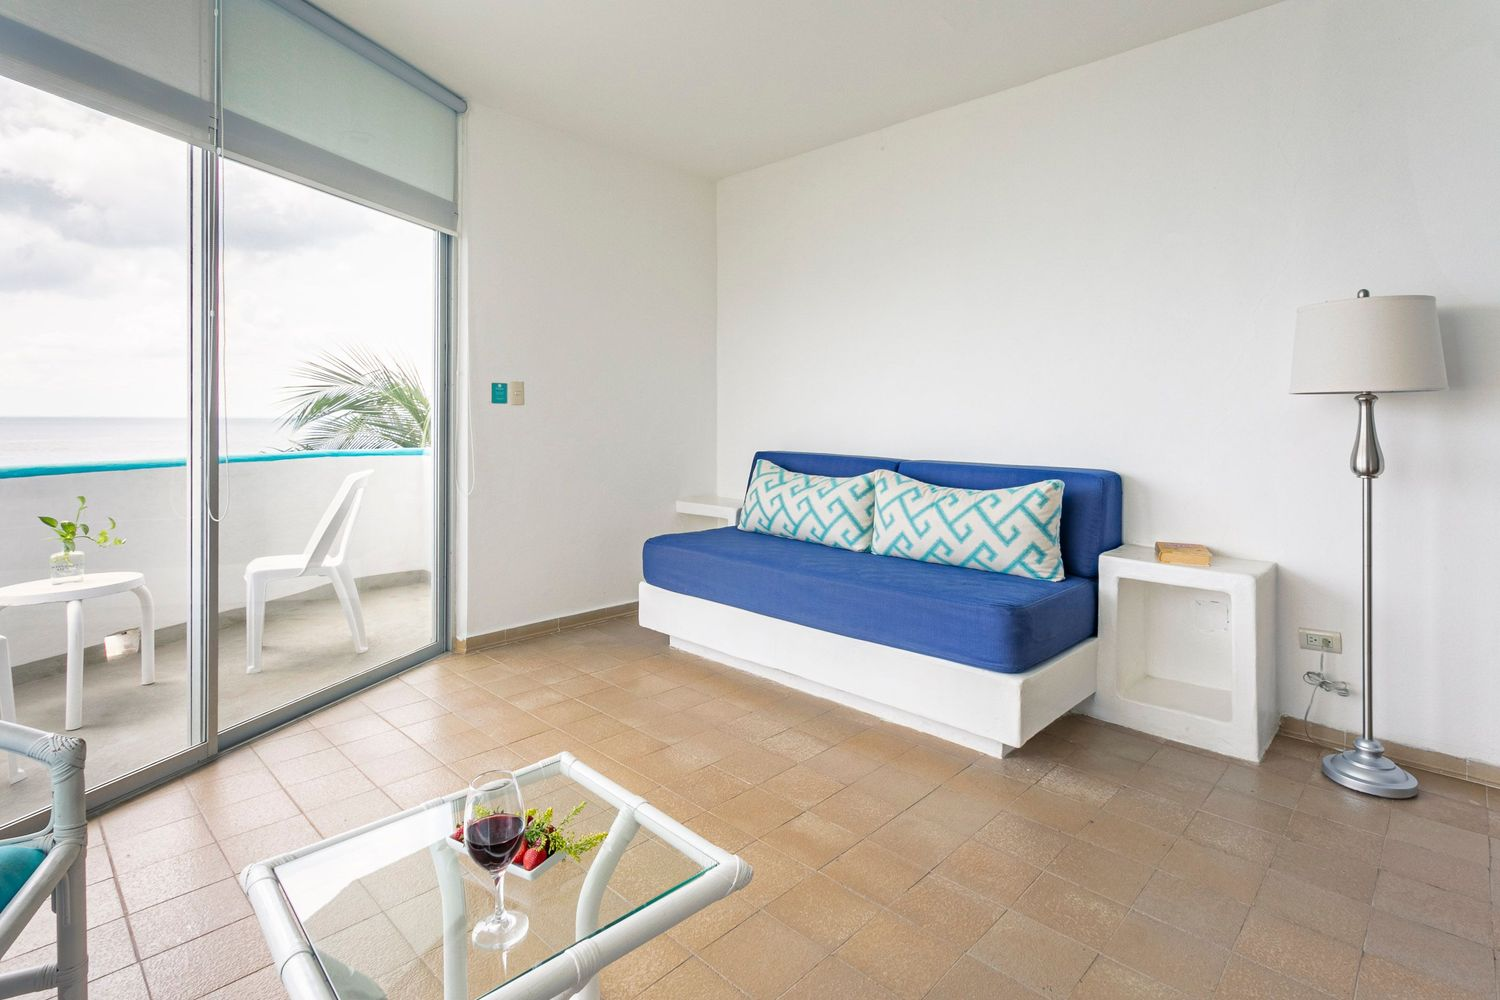 Suites Turquesa by GuruHotel Suite